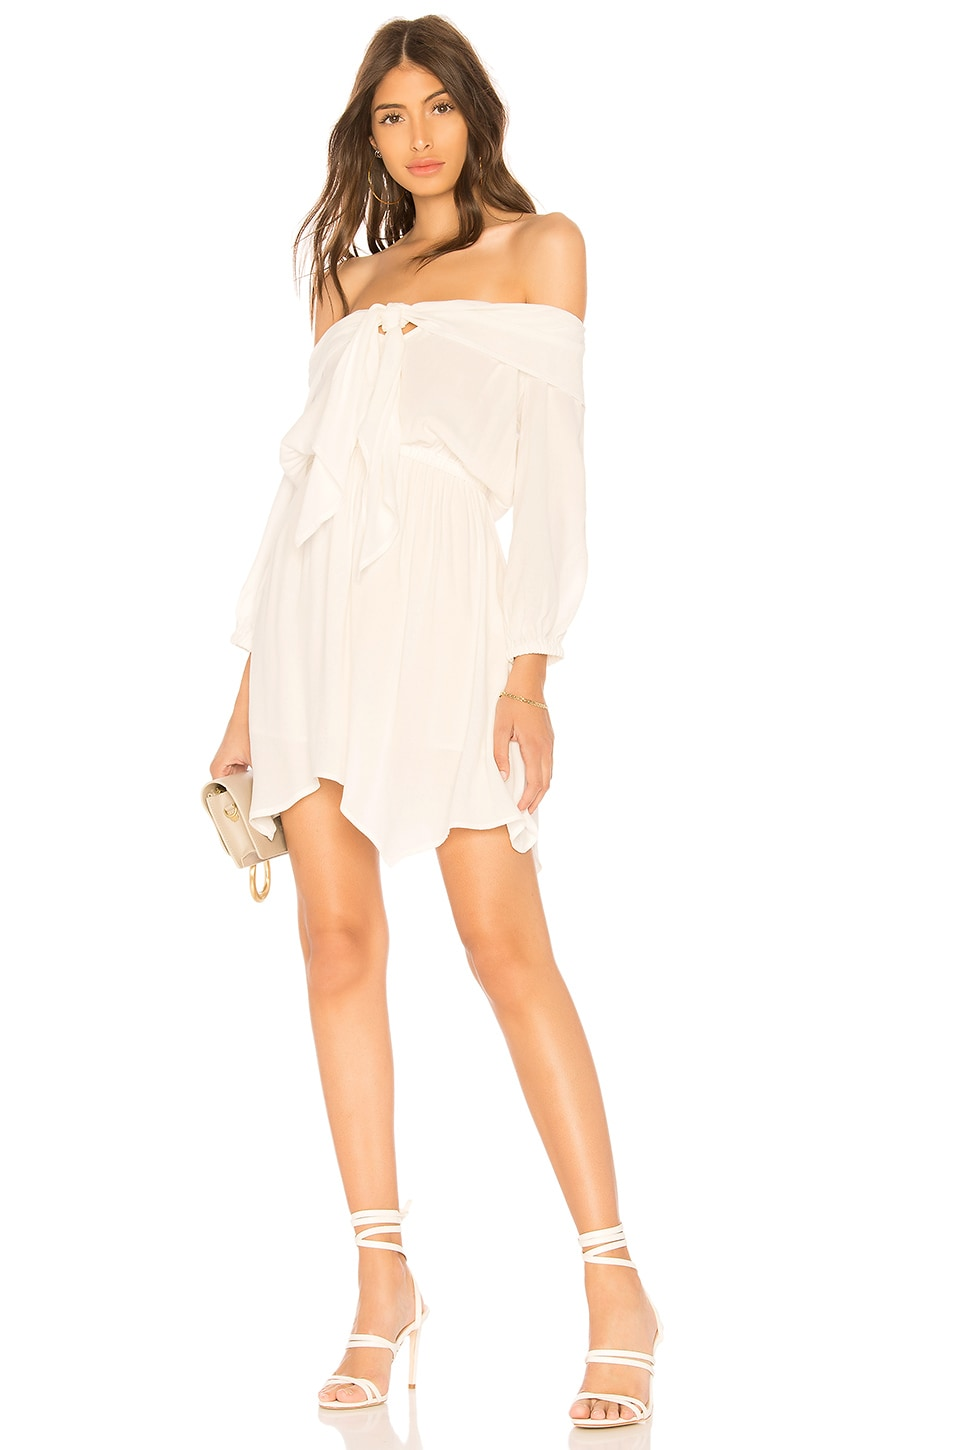 CLAYTON BILLIE DRESS